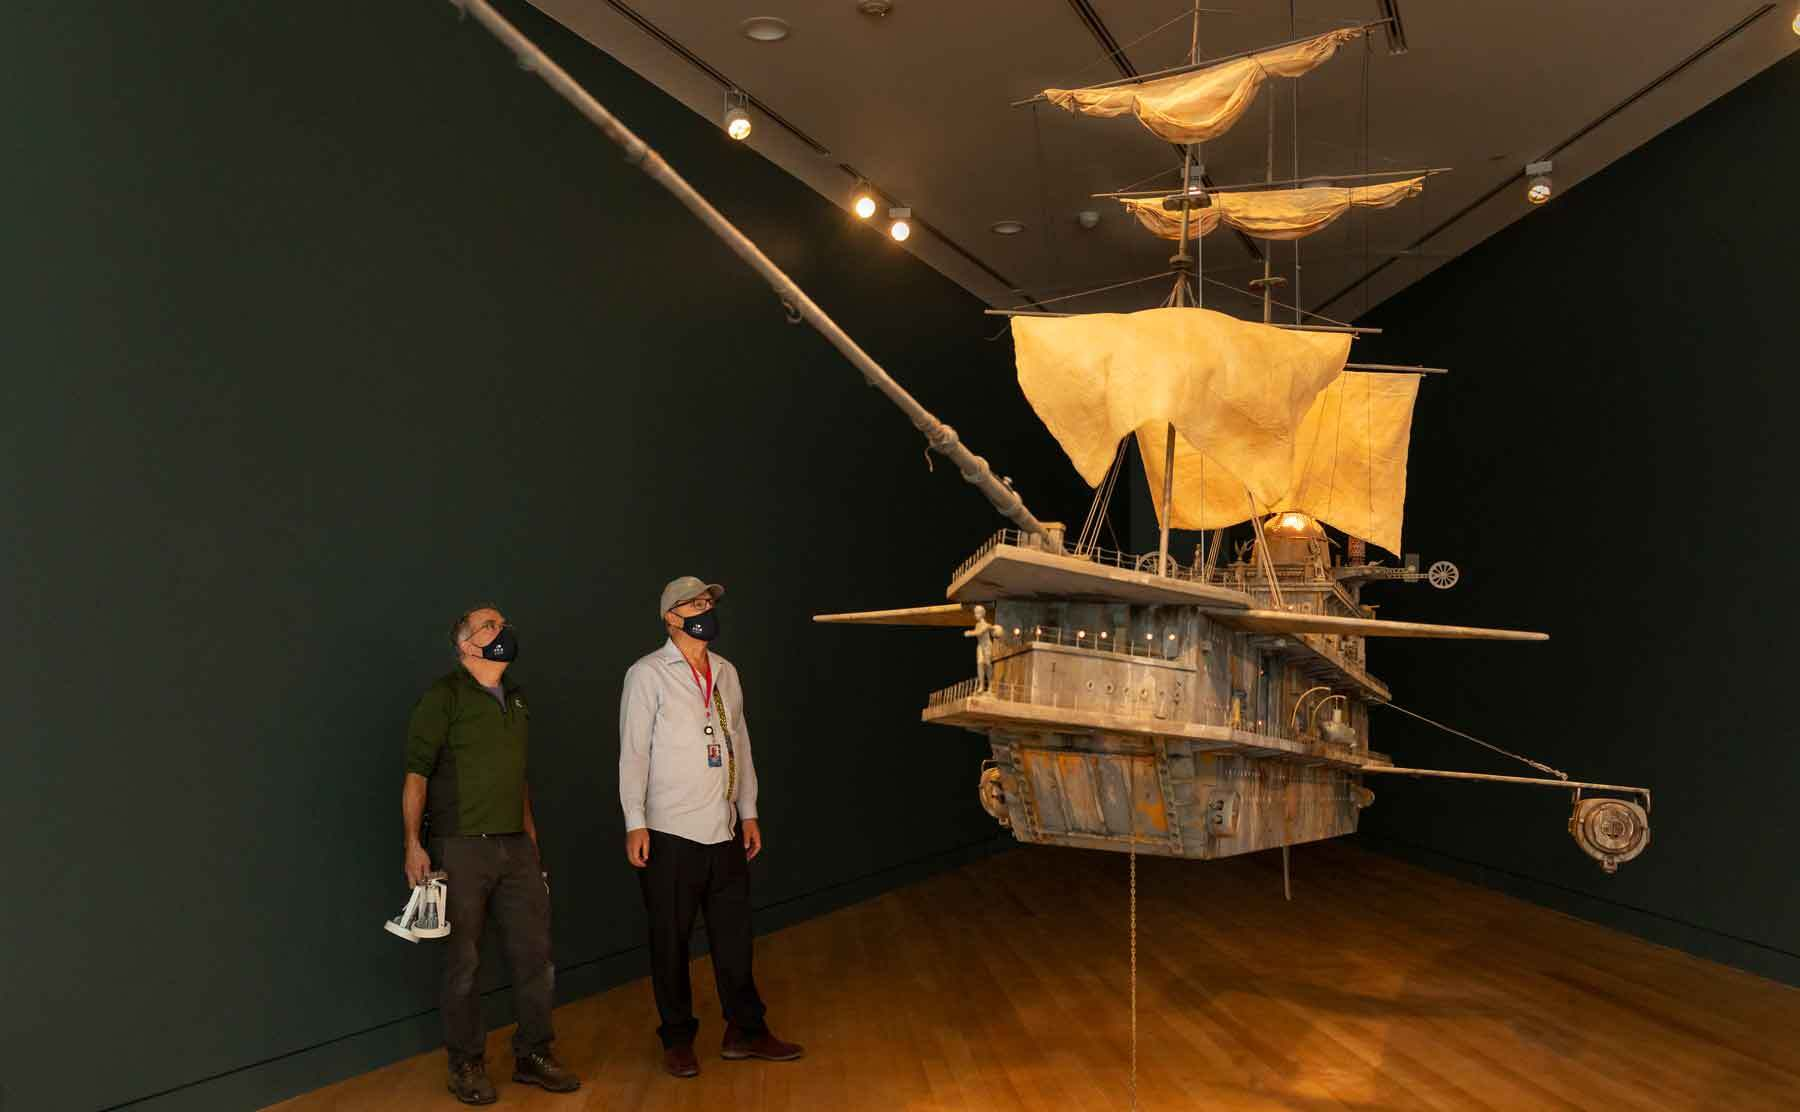 Curator Trevor Smith and Scott Benson next to a work of art carefully lit. Michael C. McMillen. The Pequod II, 1987. Peabody Essex Museum, Gift of Michael and Lauren McMillen, in memory of James Doolin. Photo by Kathy Tarantola